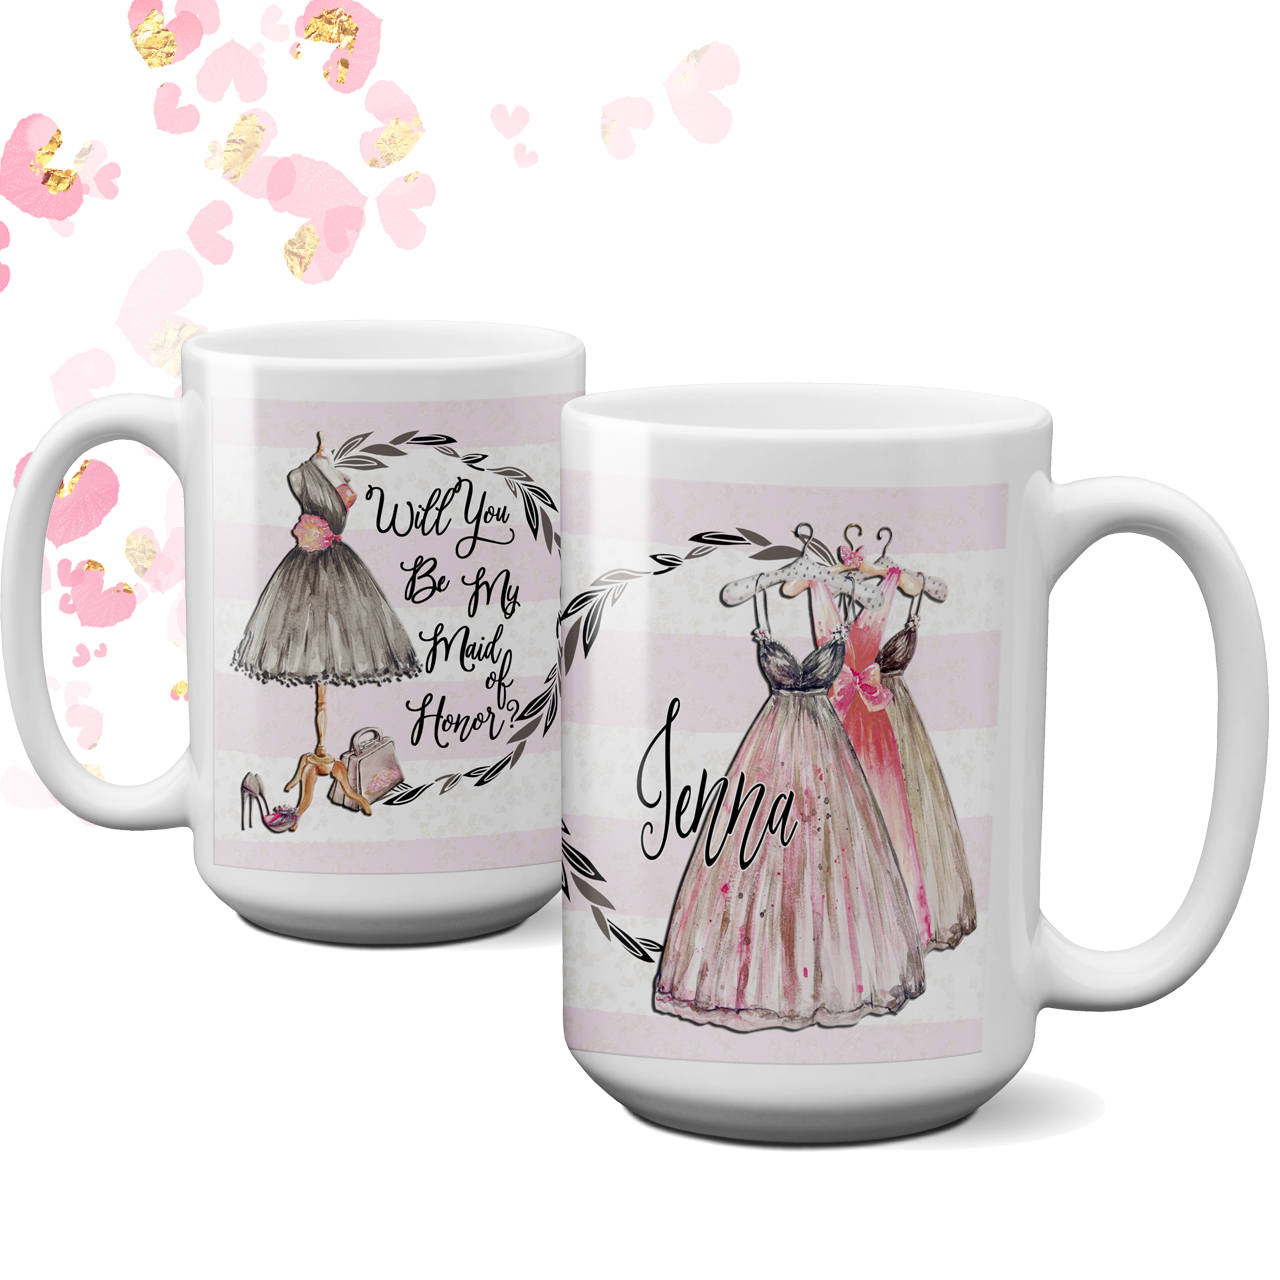 Personalized Will You be My Maid of Honor coffee mug | Retro Style Maid of Honor | Maid of Honor Proposal | Be my Maid of Honor Coffee Cup